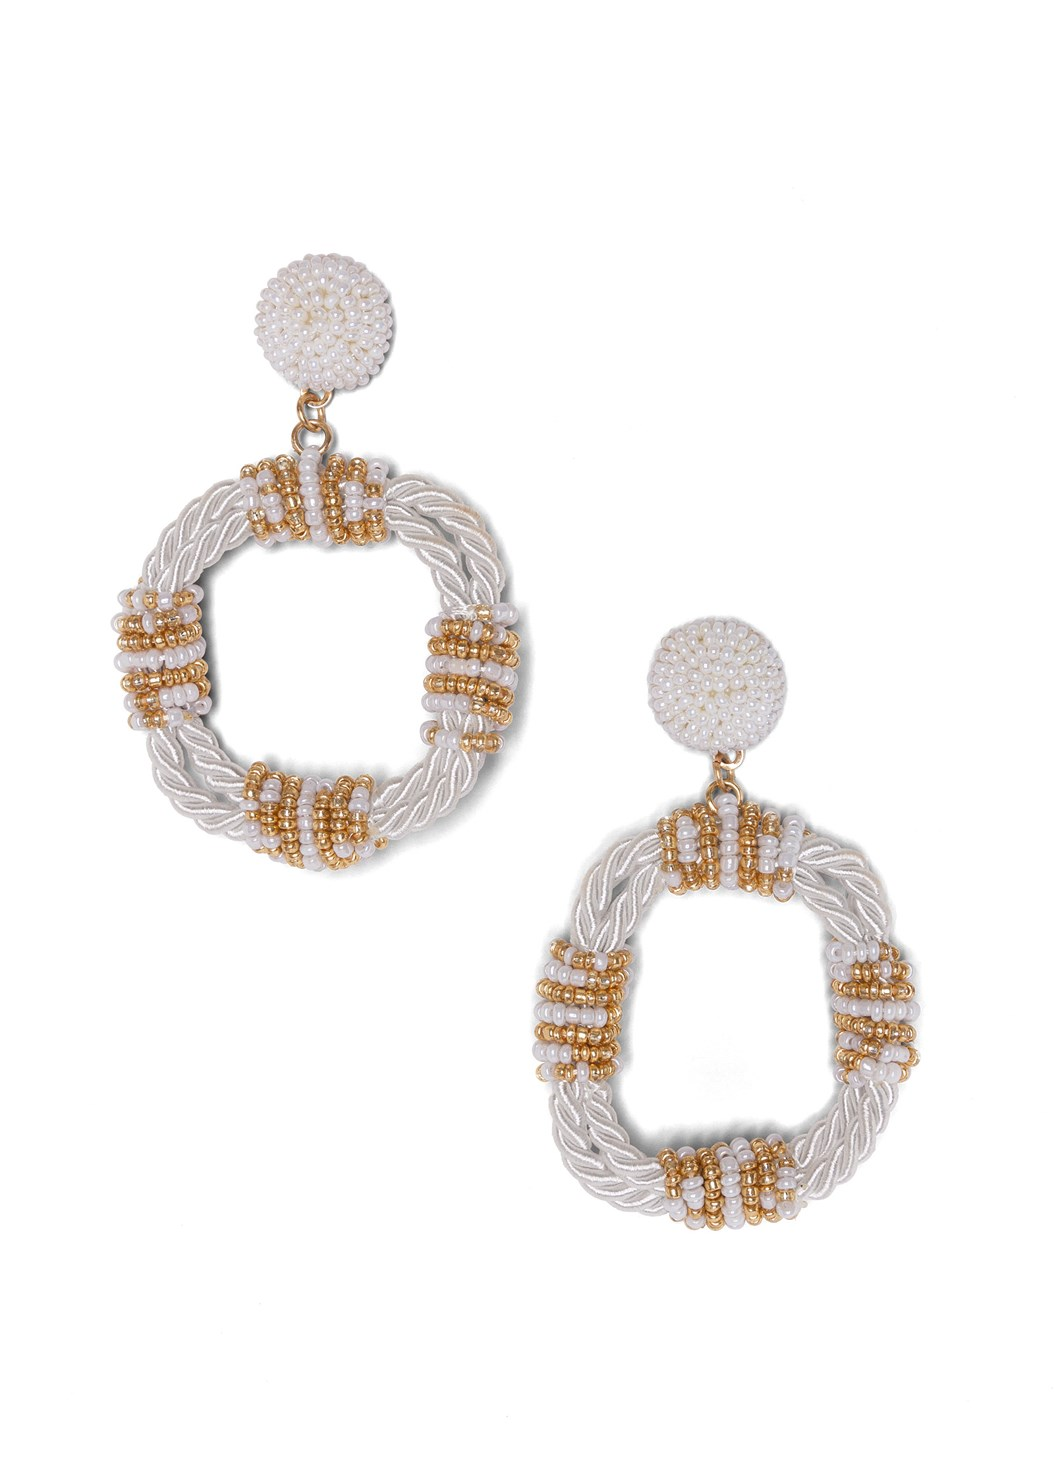 Beaded Rope Earrings